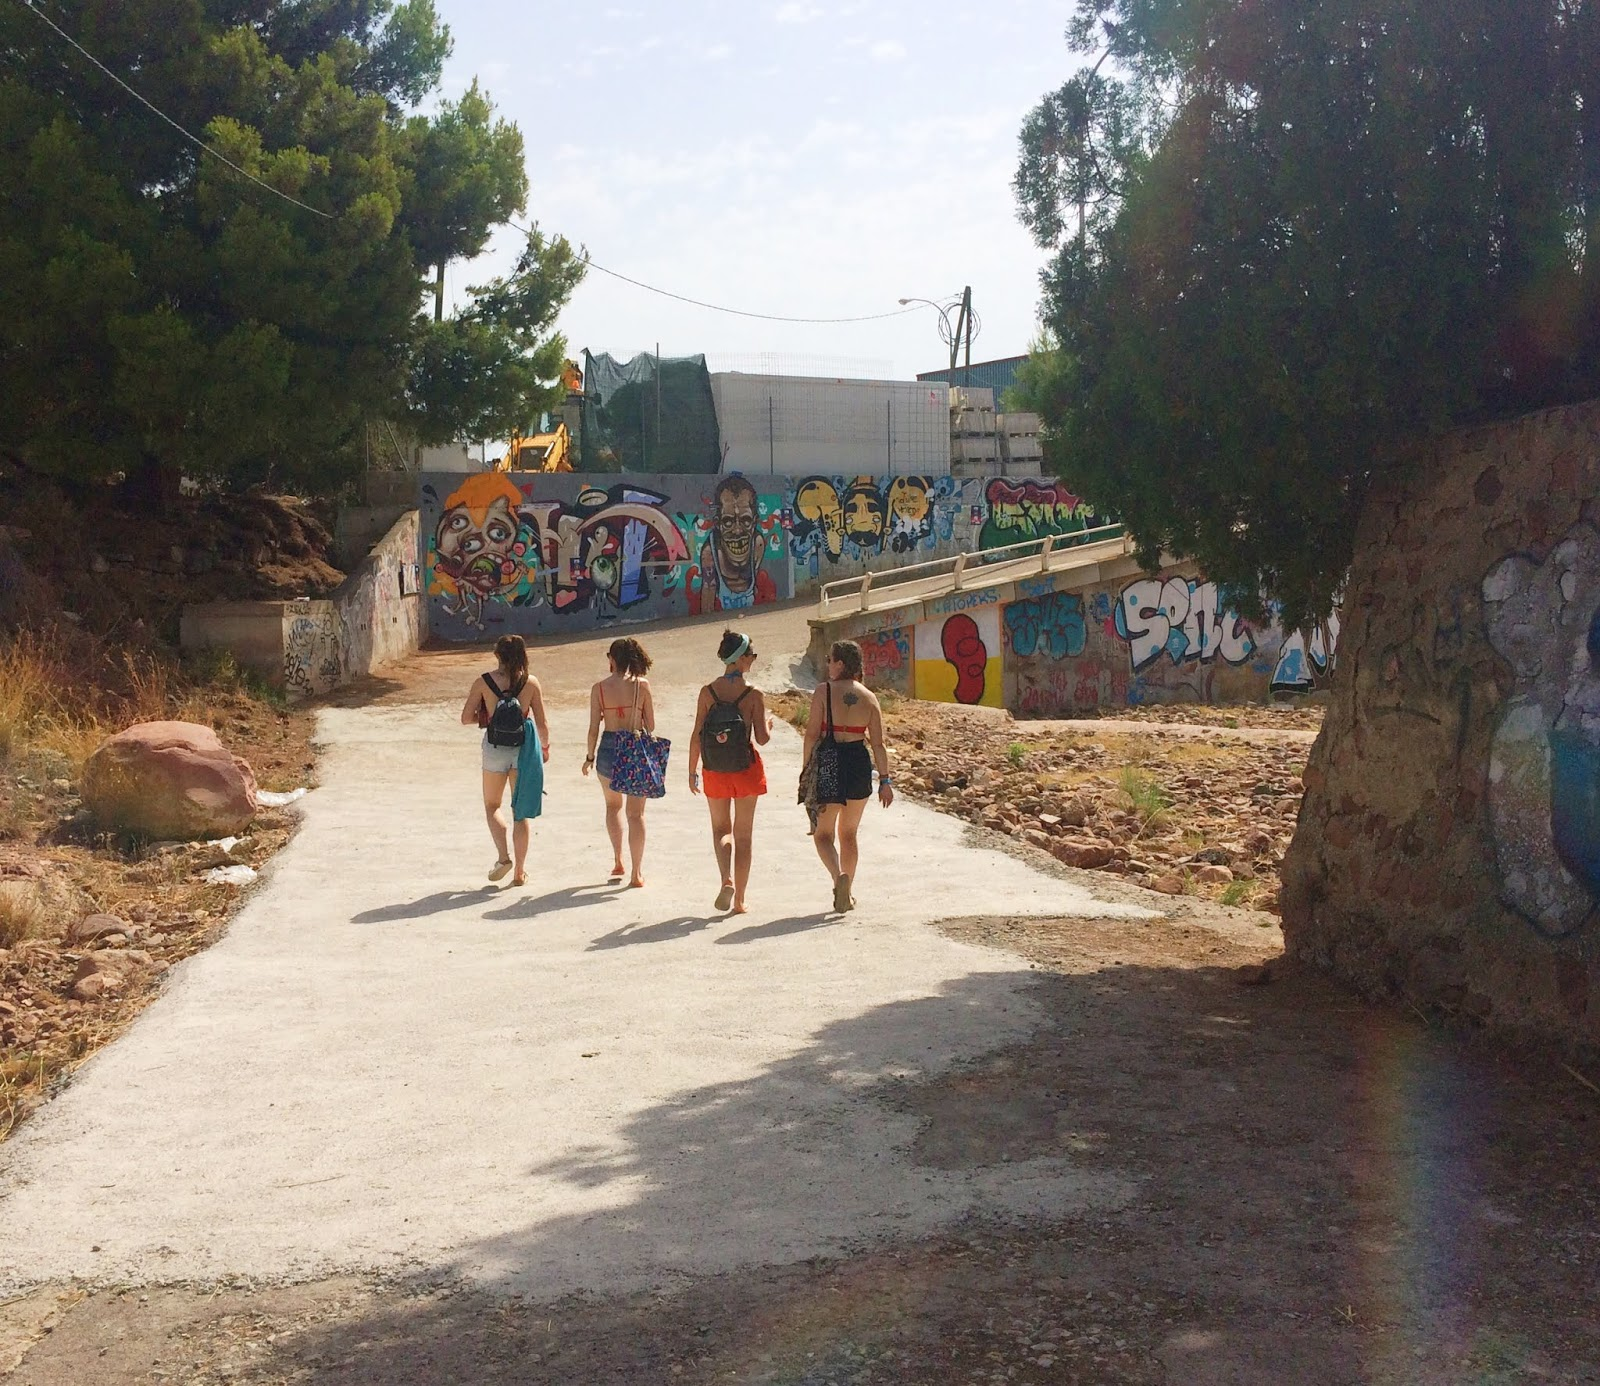 Group of girls walking through graffiti tunnel in Benicasim